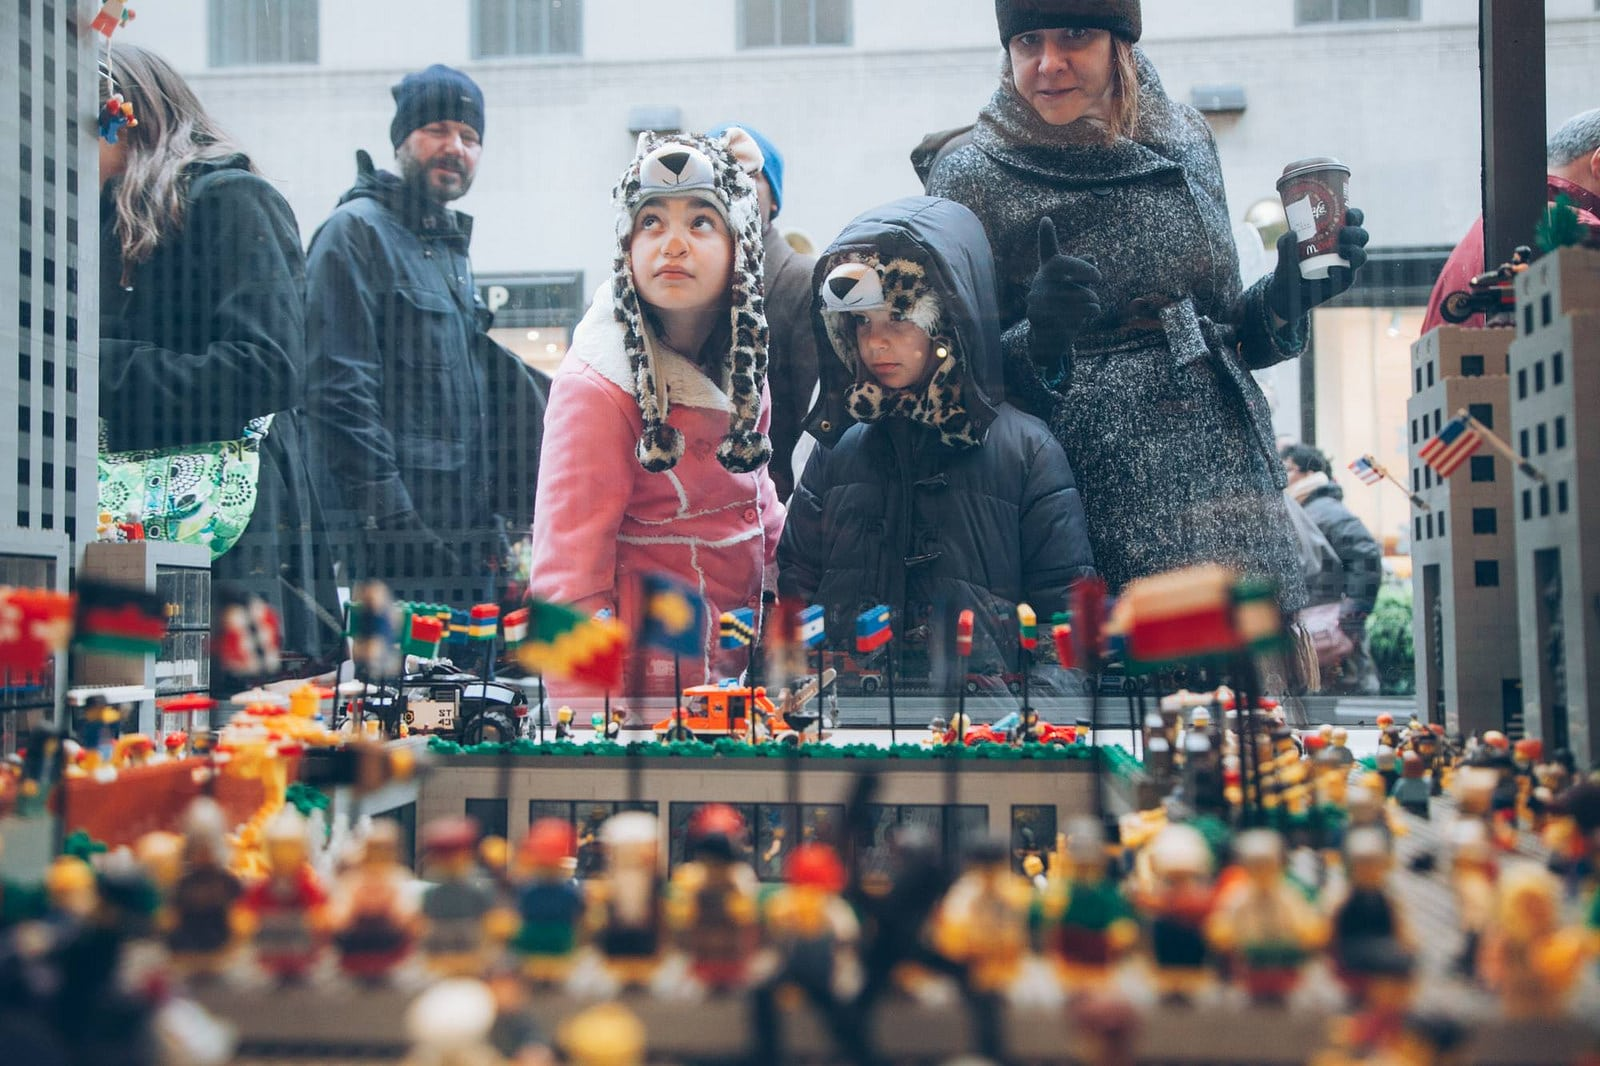 lego-store-new-york Christmas in New York, a source of inspiration #7